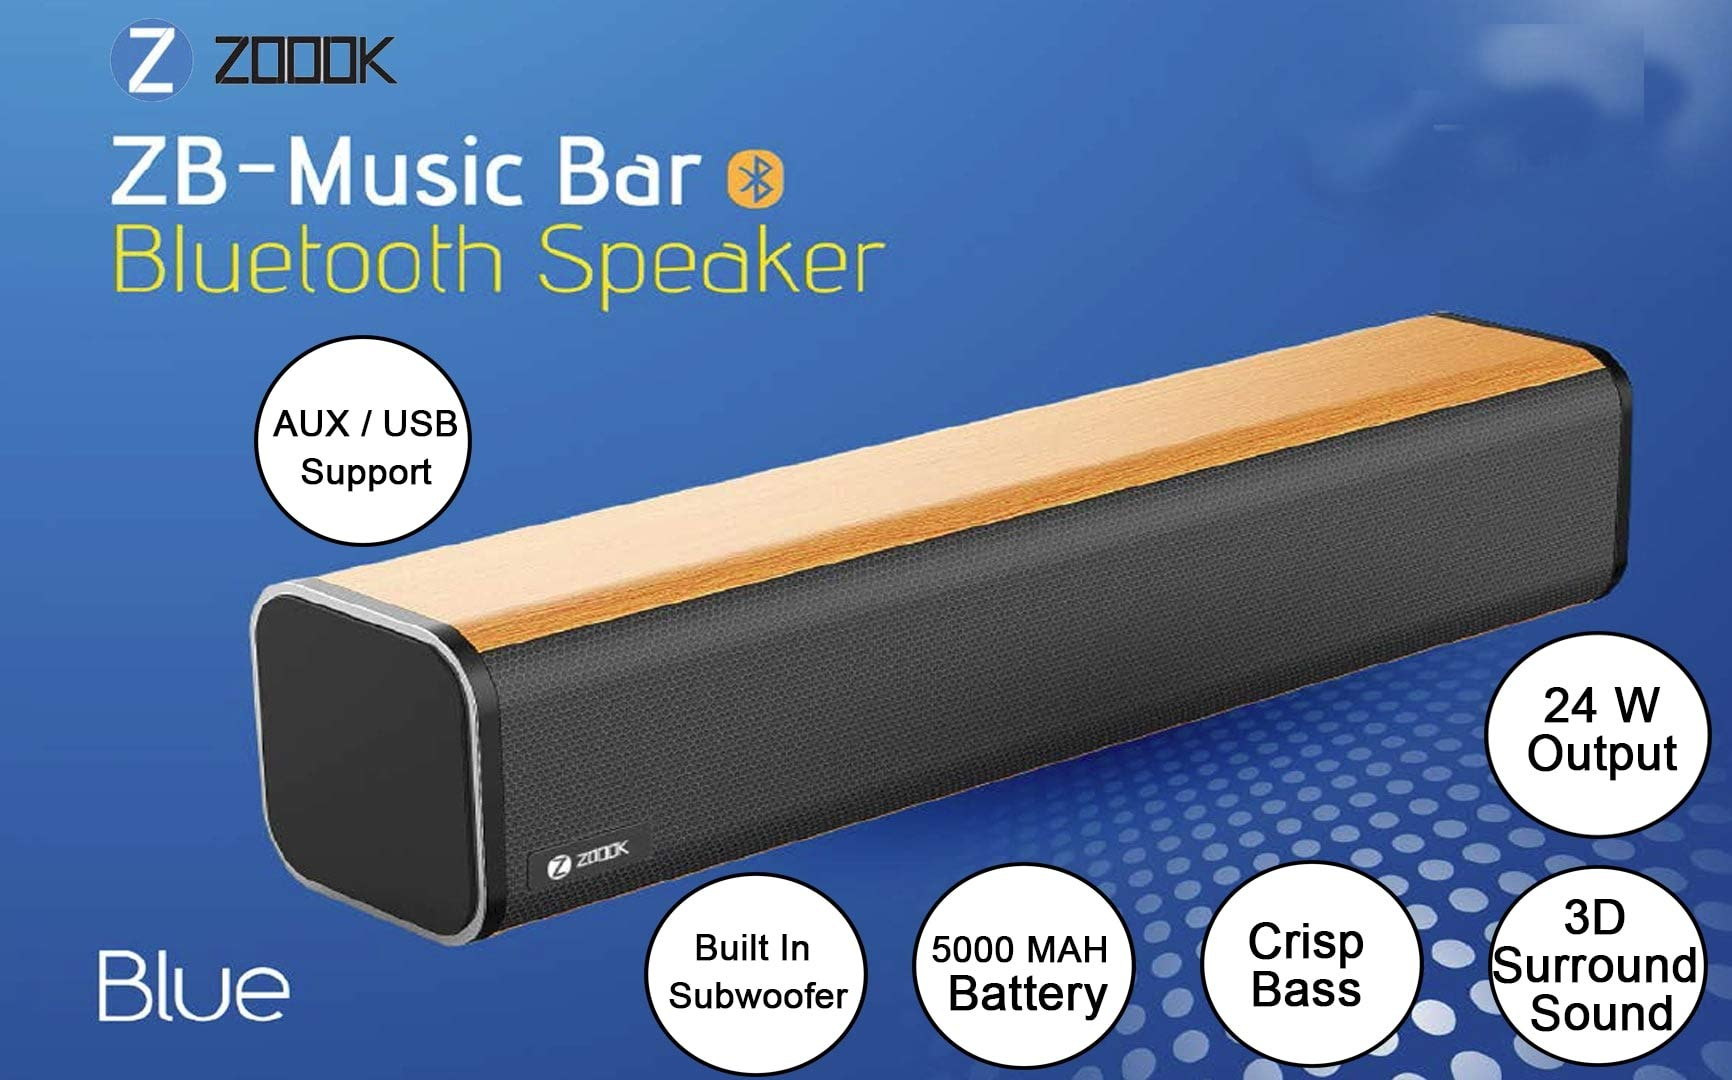 Zoook Music Bar 24 watts Bluetooth Soundbar with Wooden Finish and 3D Sound